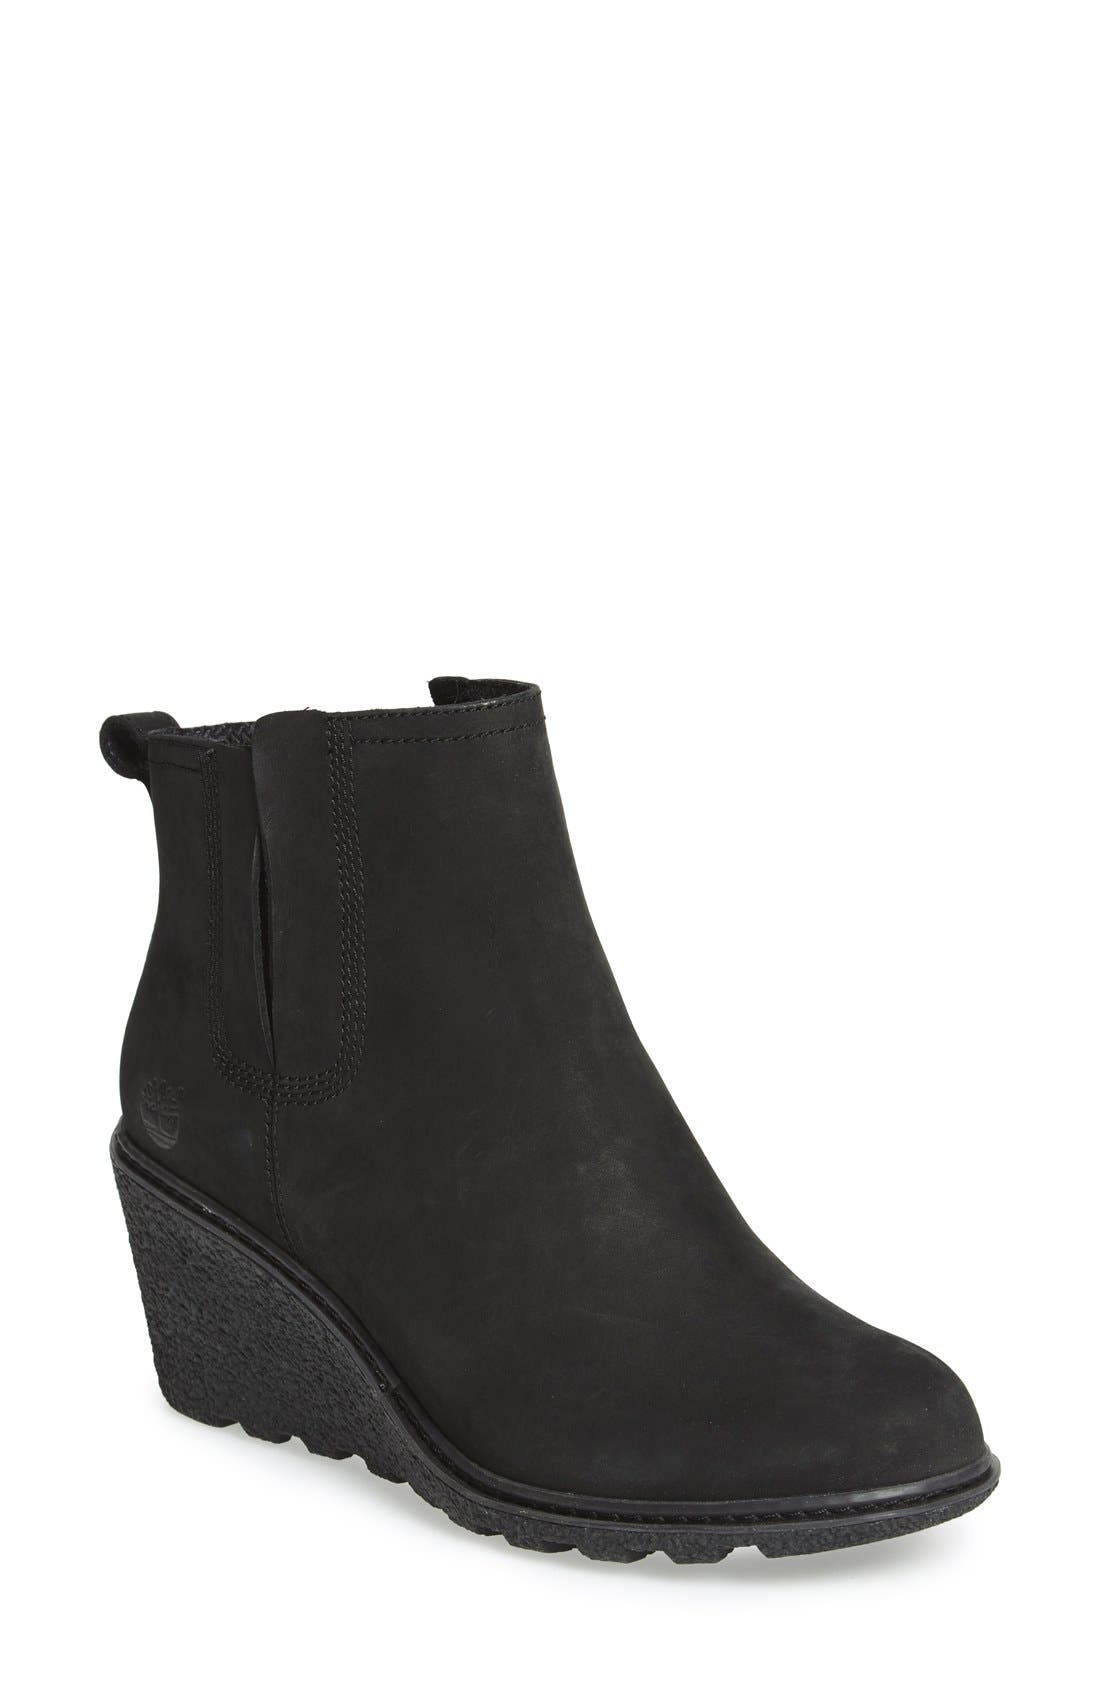 'Amston' Chelsea Wedge Boot,                         Main,                         color, 001